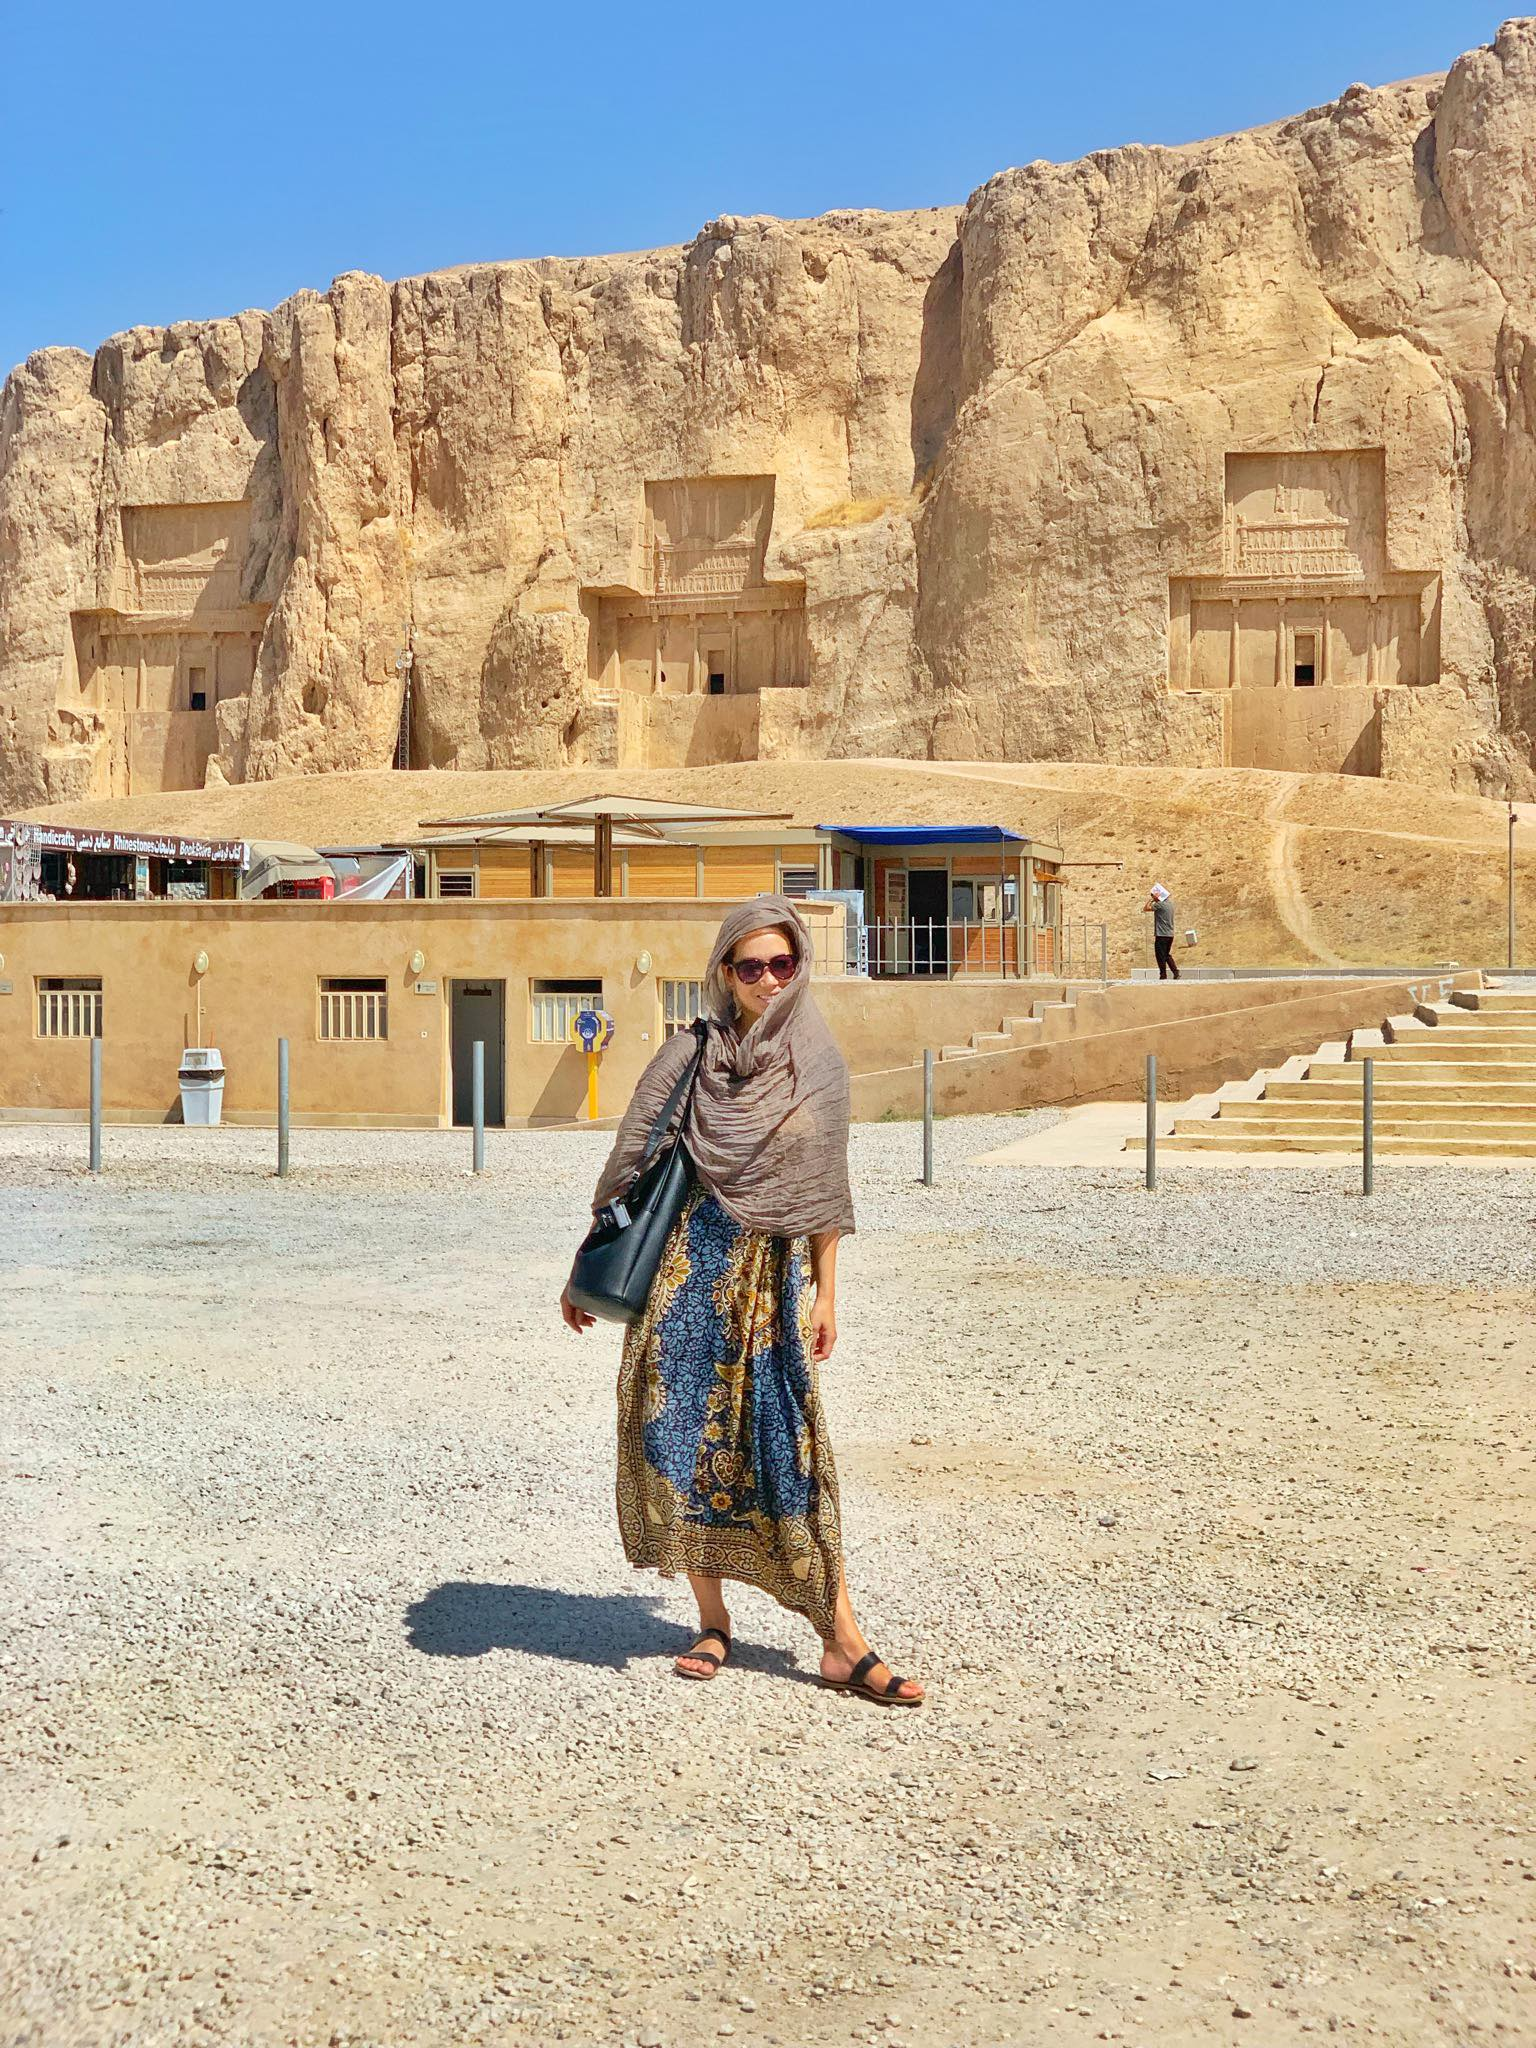 Kach Solo Travels in 2019 UNESCO heritages sites of Persepolis and Pasagardae2.jpg